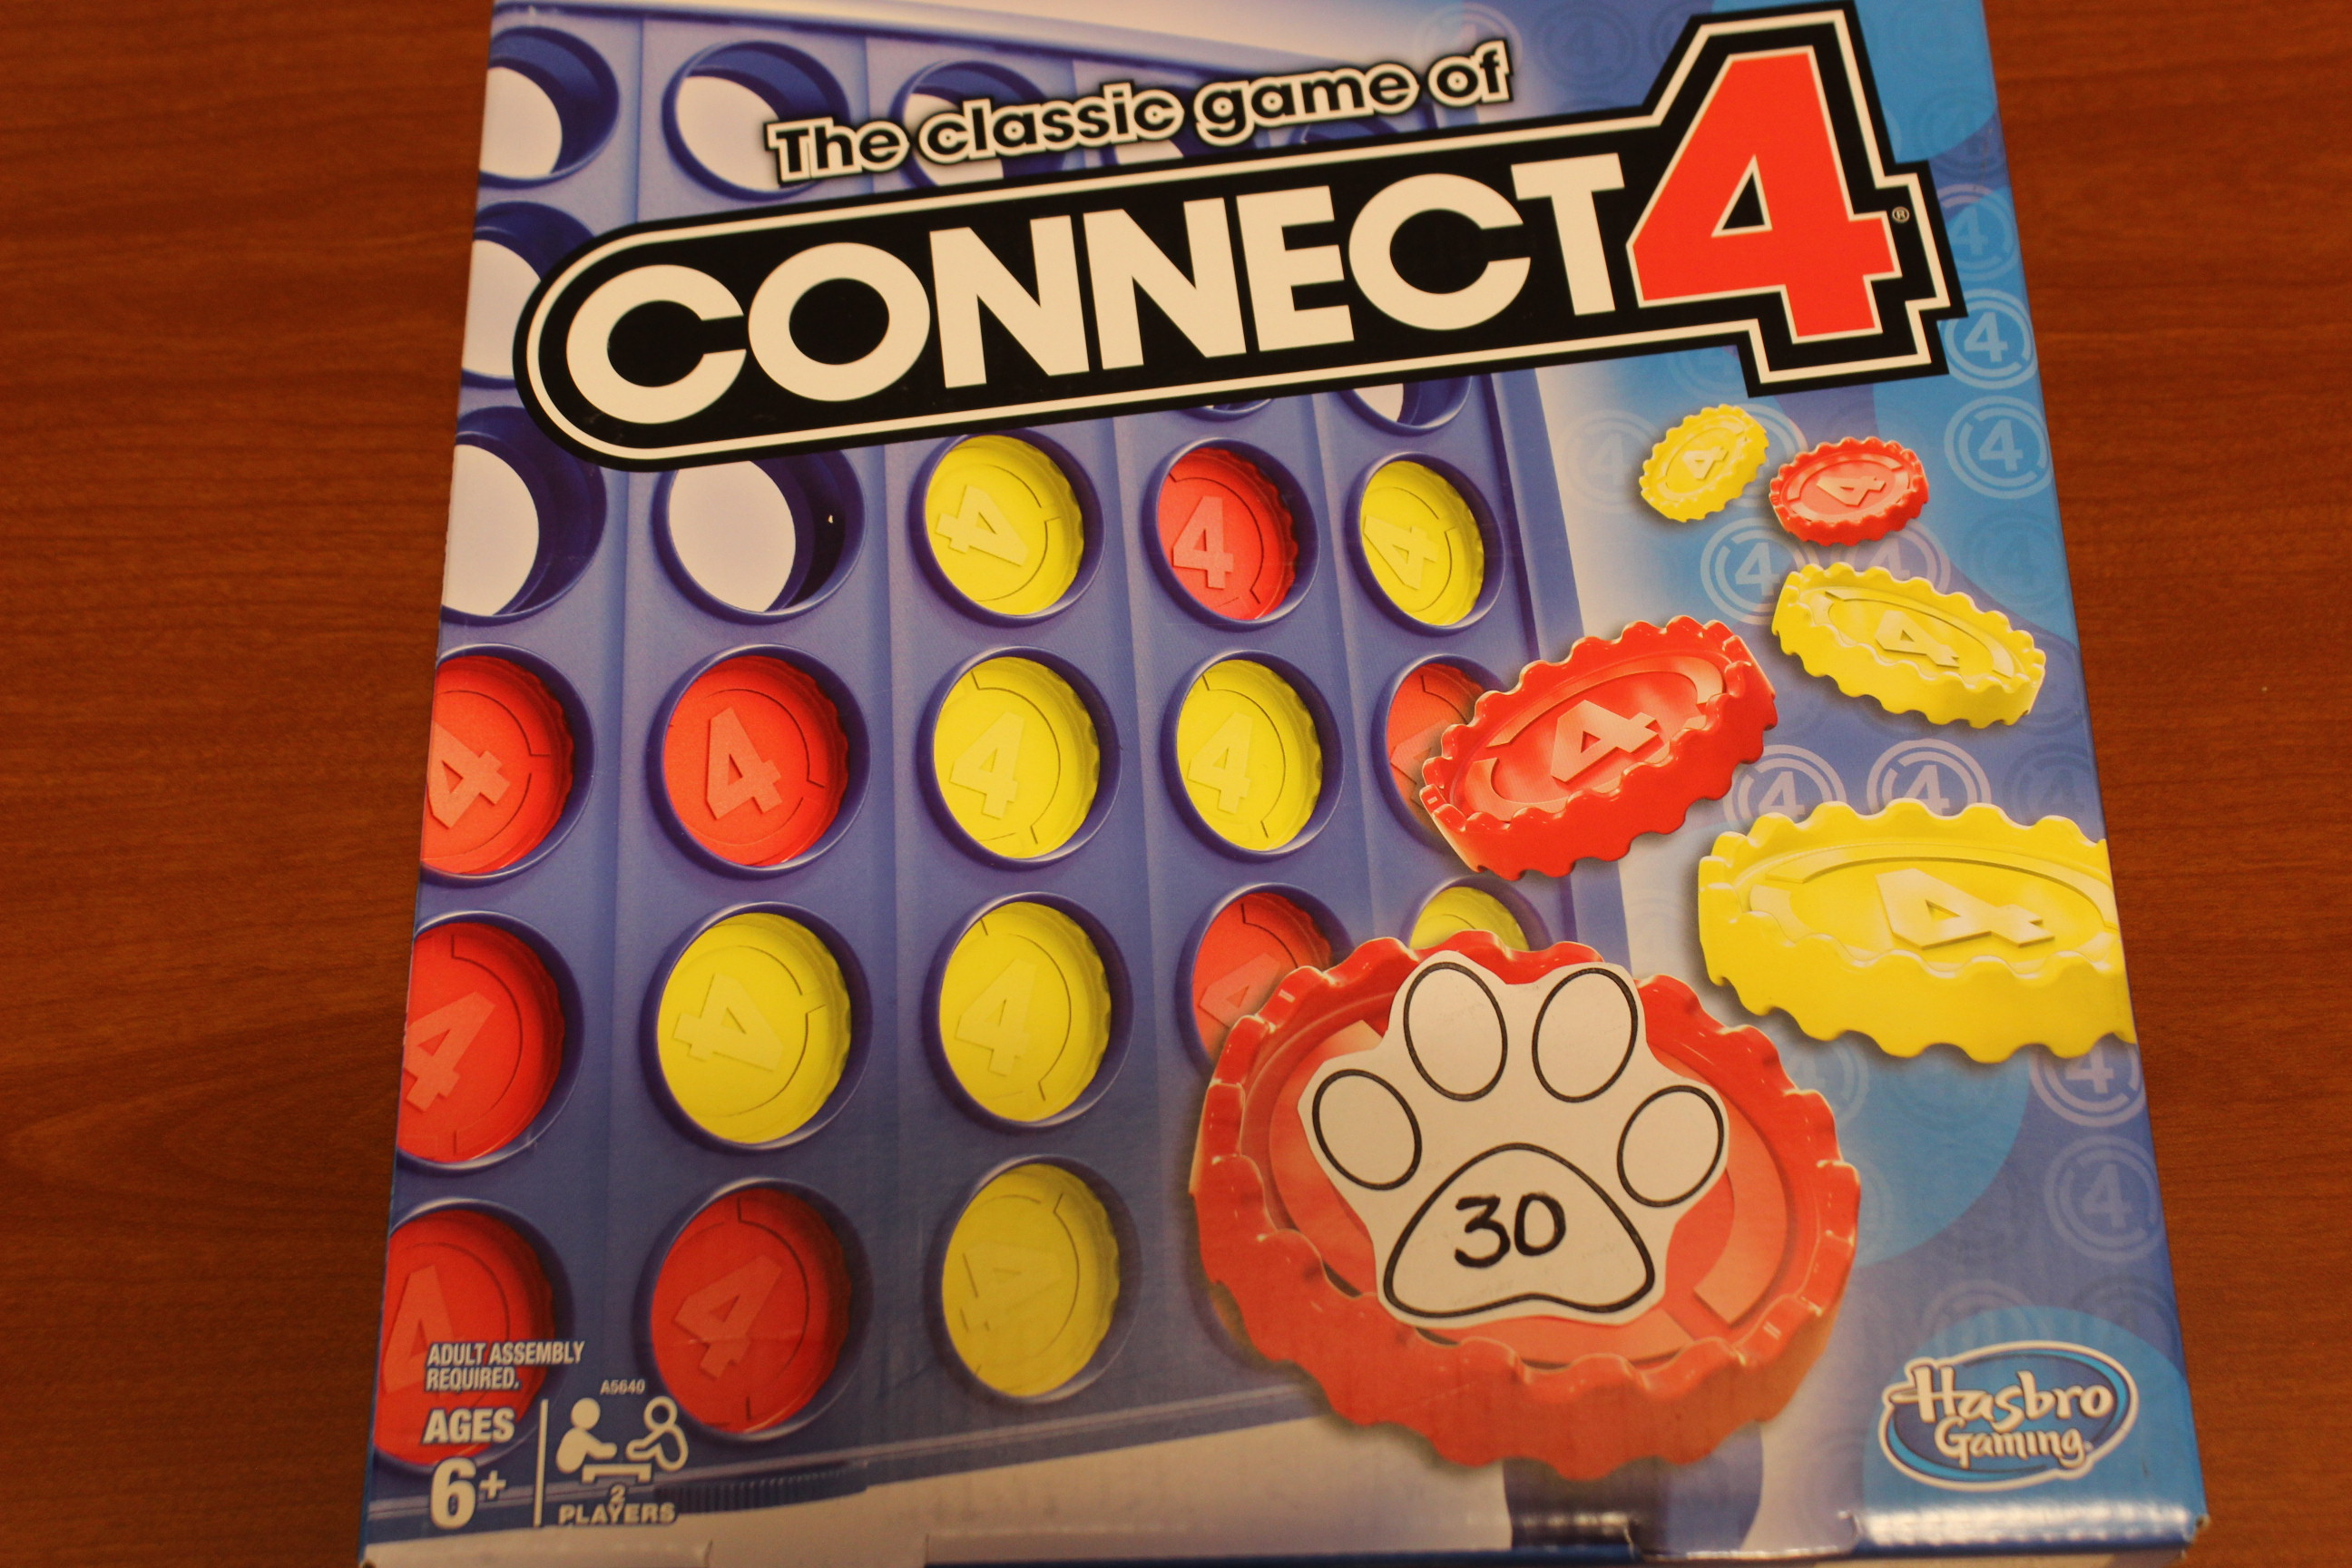 30 Paws Connect 4 Game